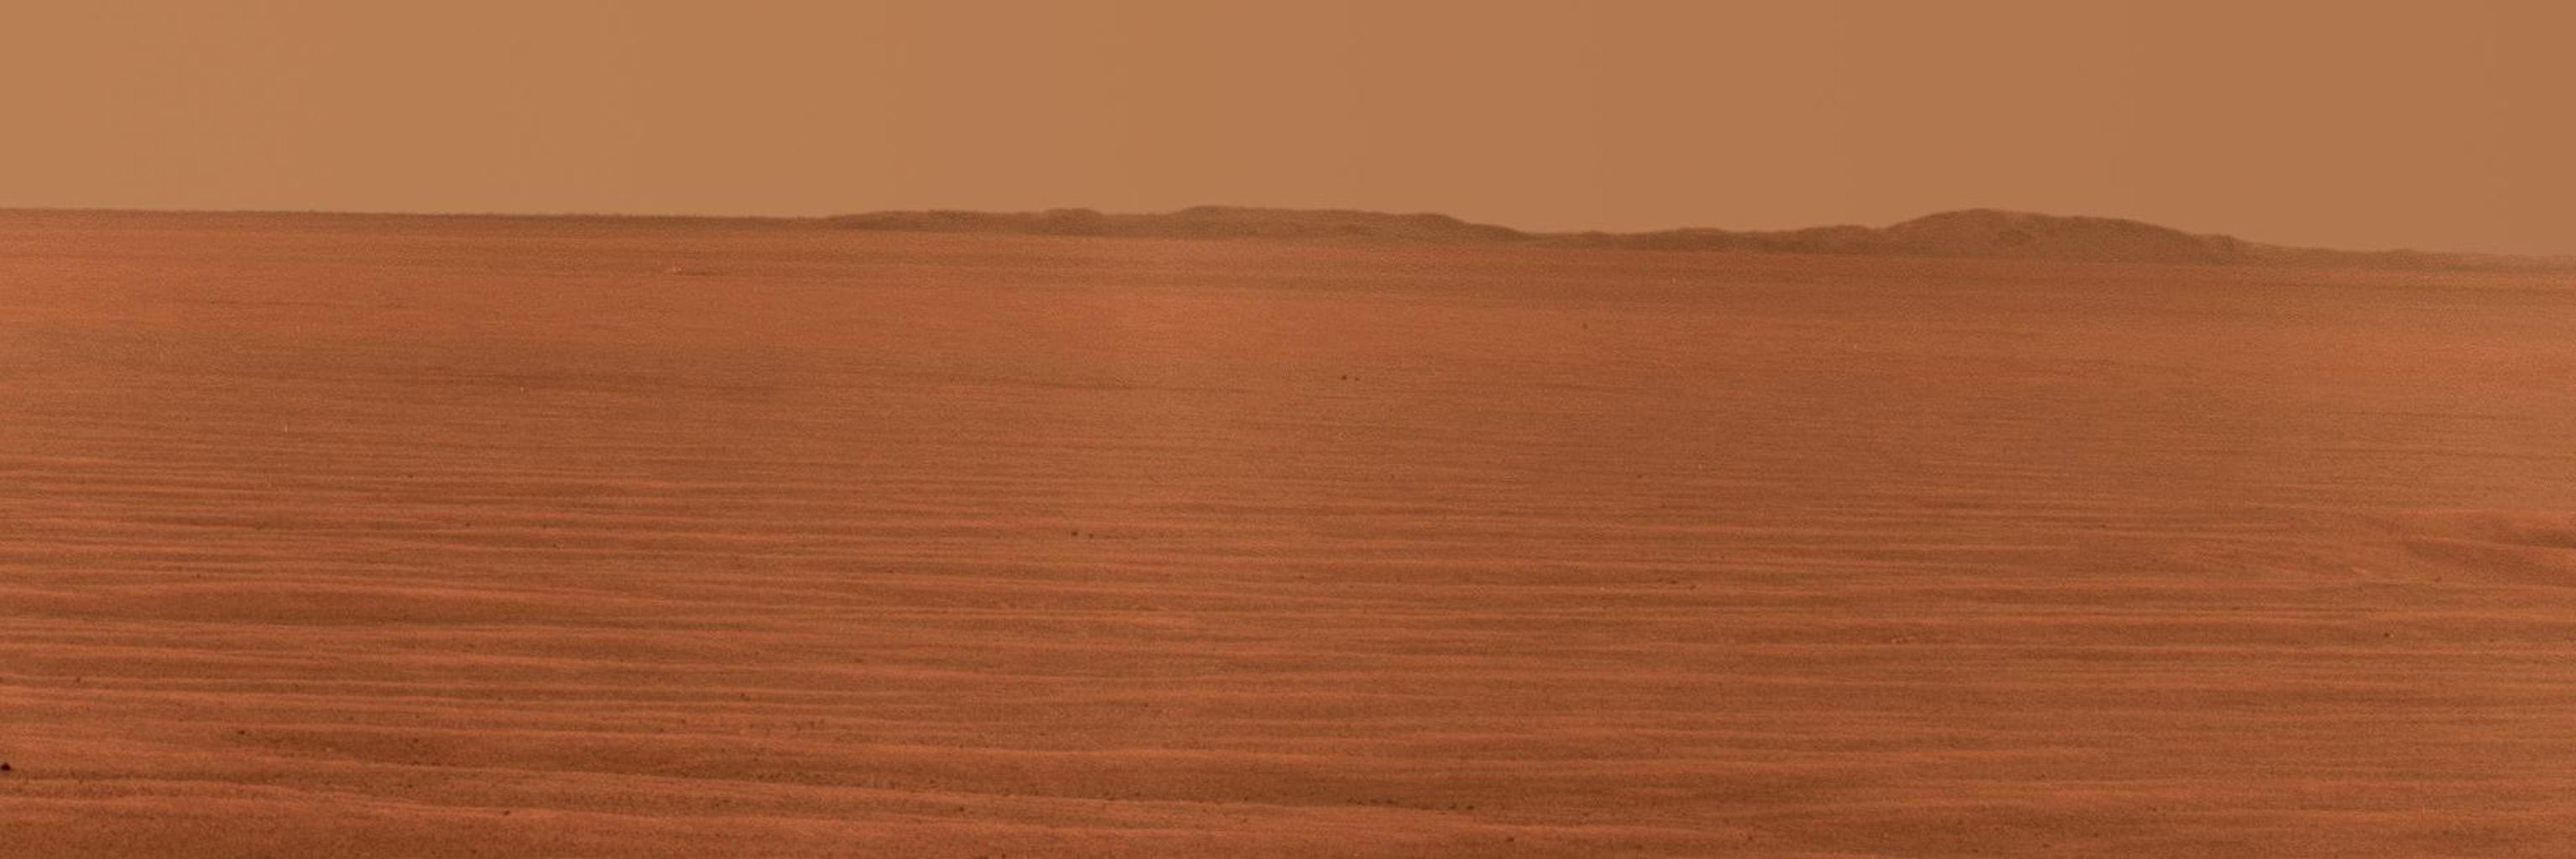 NASA's Mars Exploration Rover Opportunity used its panoramic camera to record this eastward horizon view. A portion of Endeavour Crater's eastern rim, in the distance, is visible over the Meridiani plain.